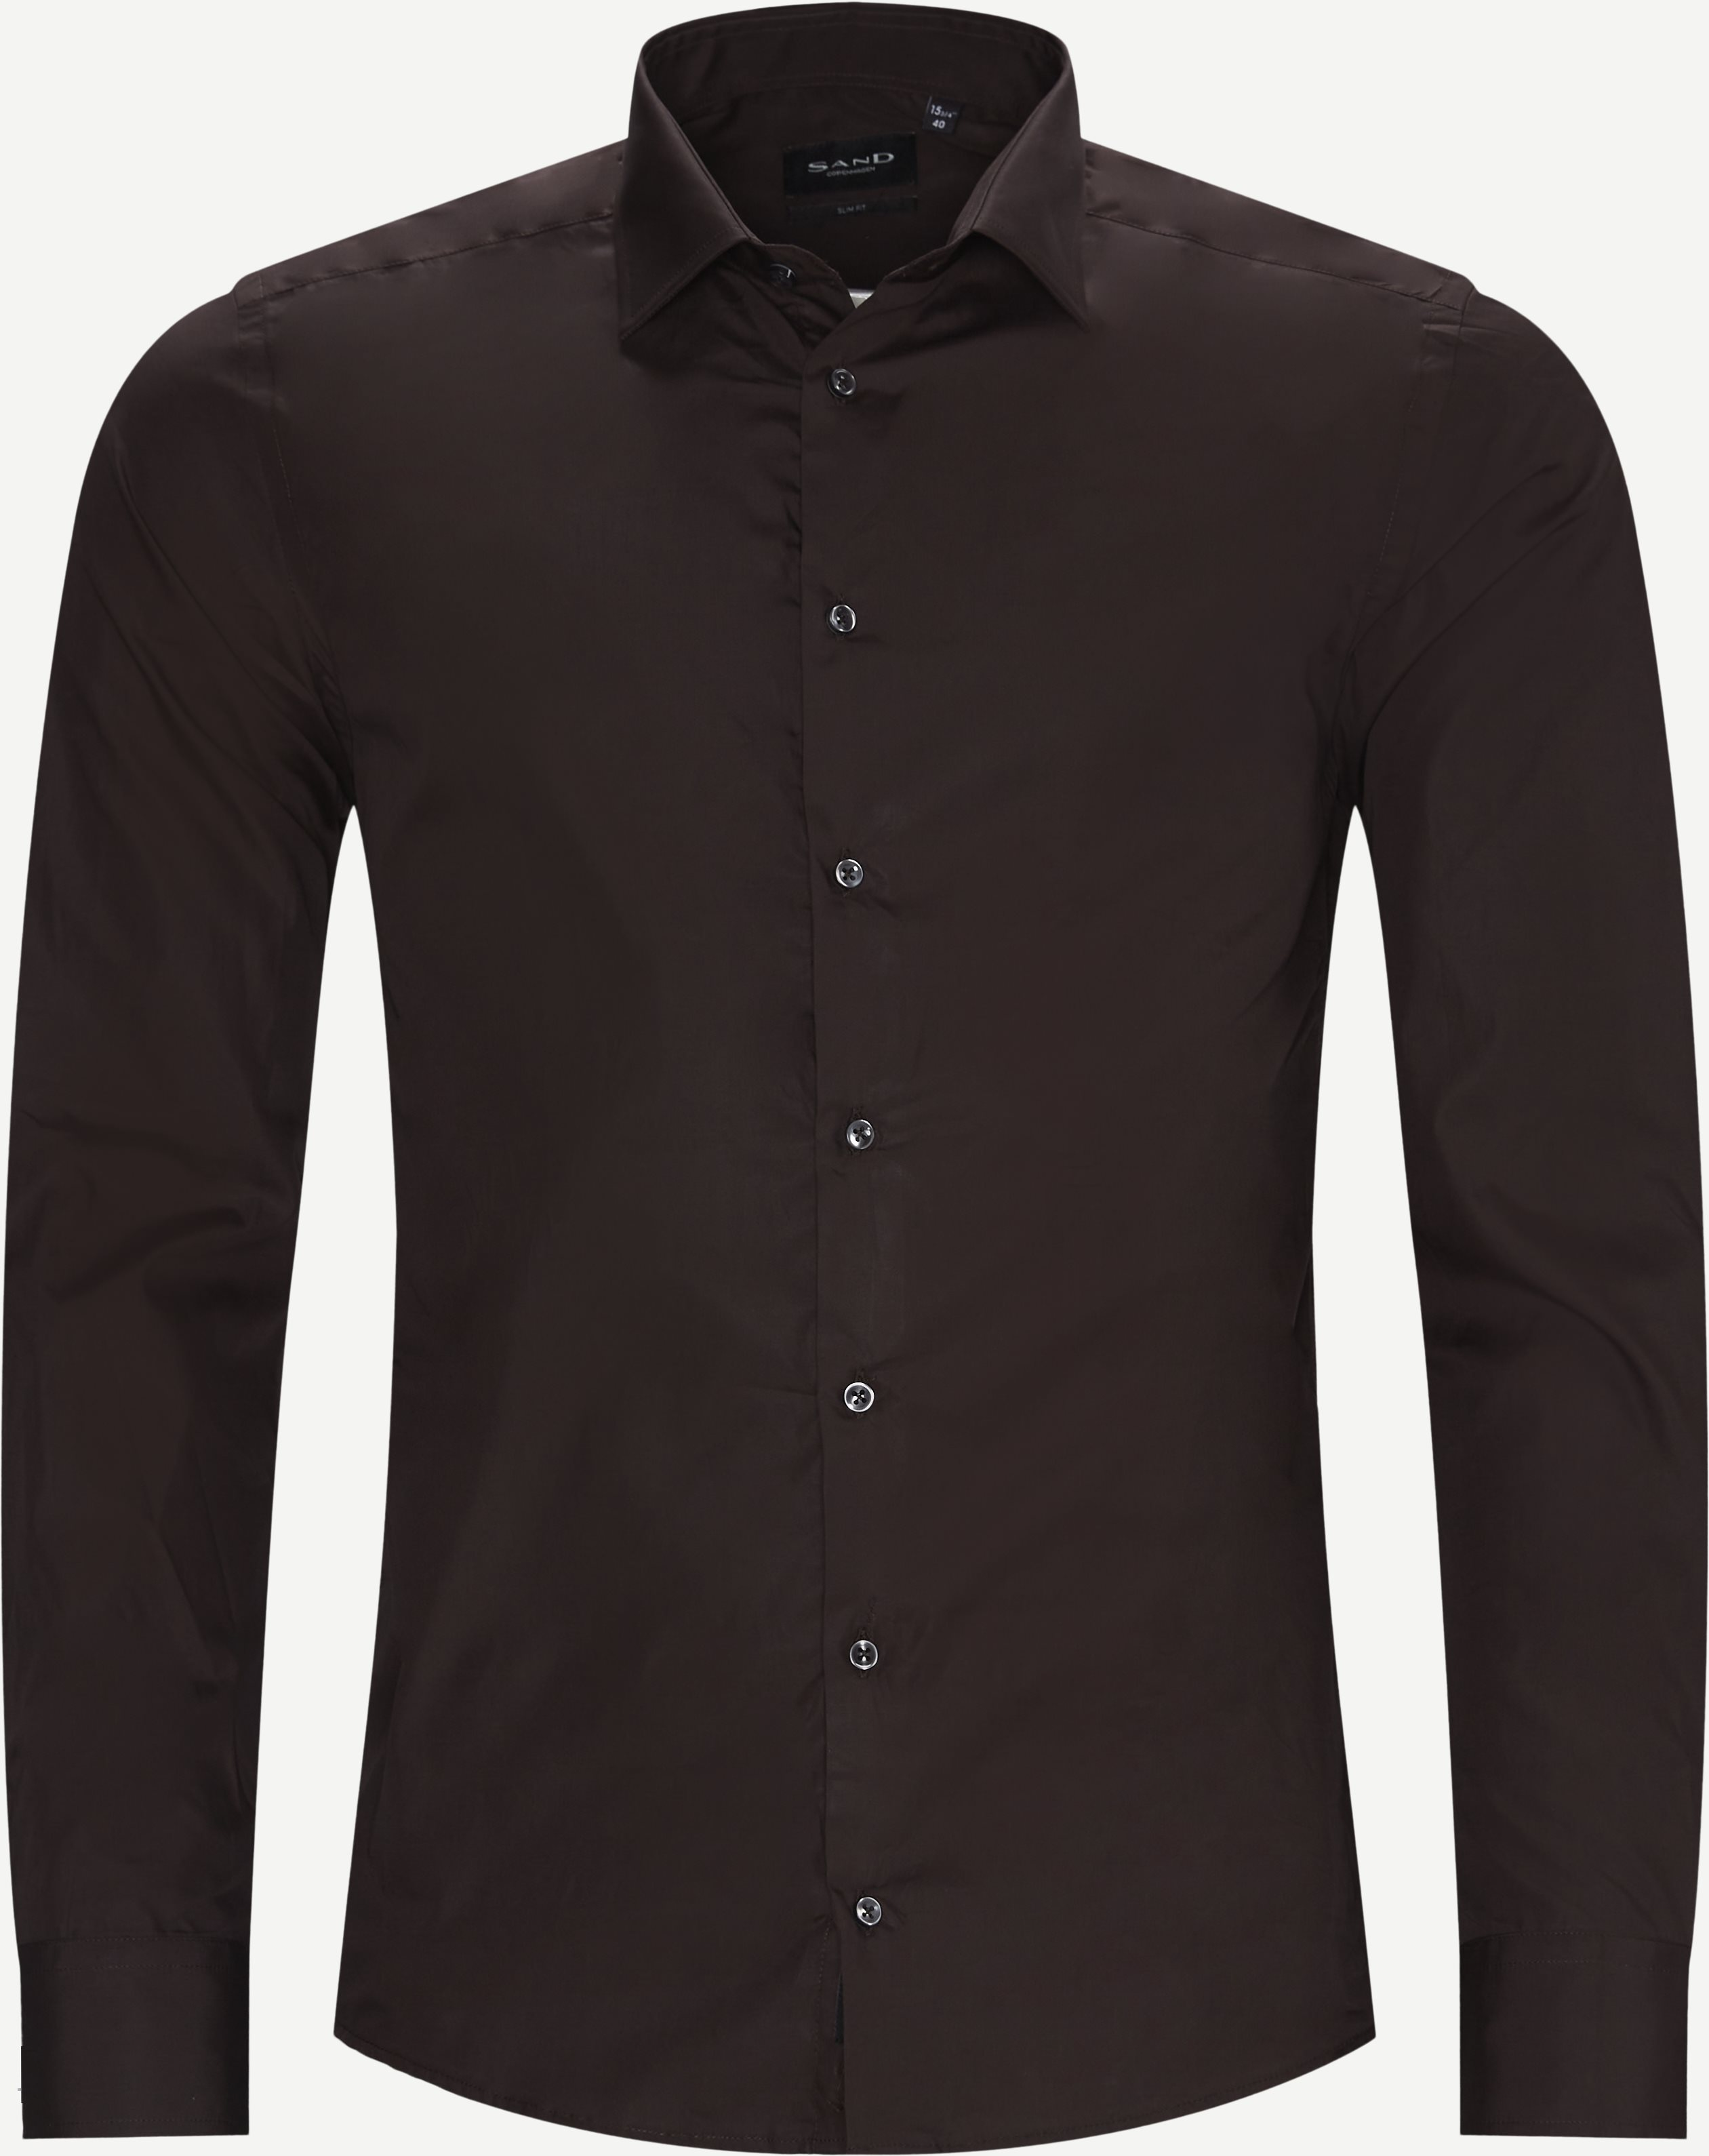 Shirts - Brown